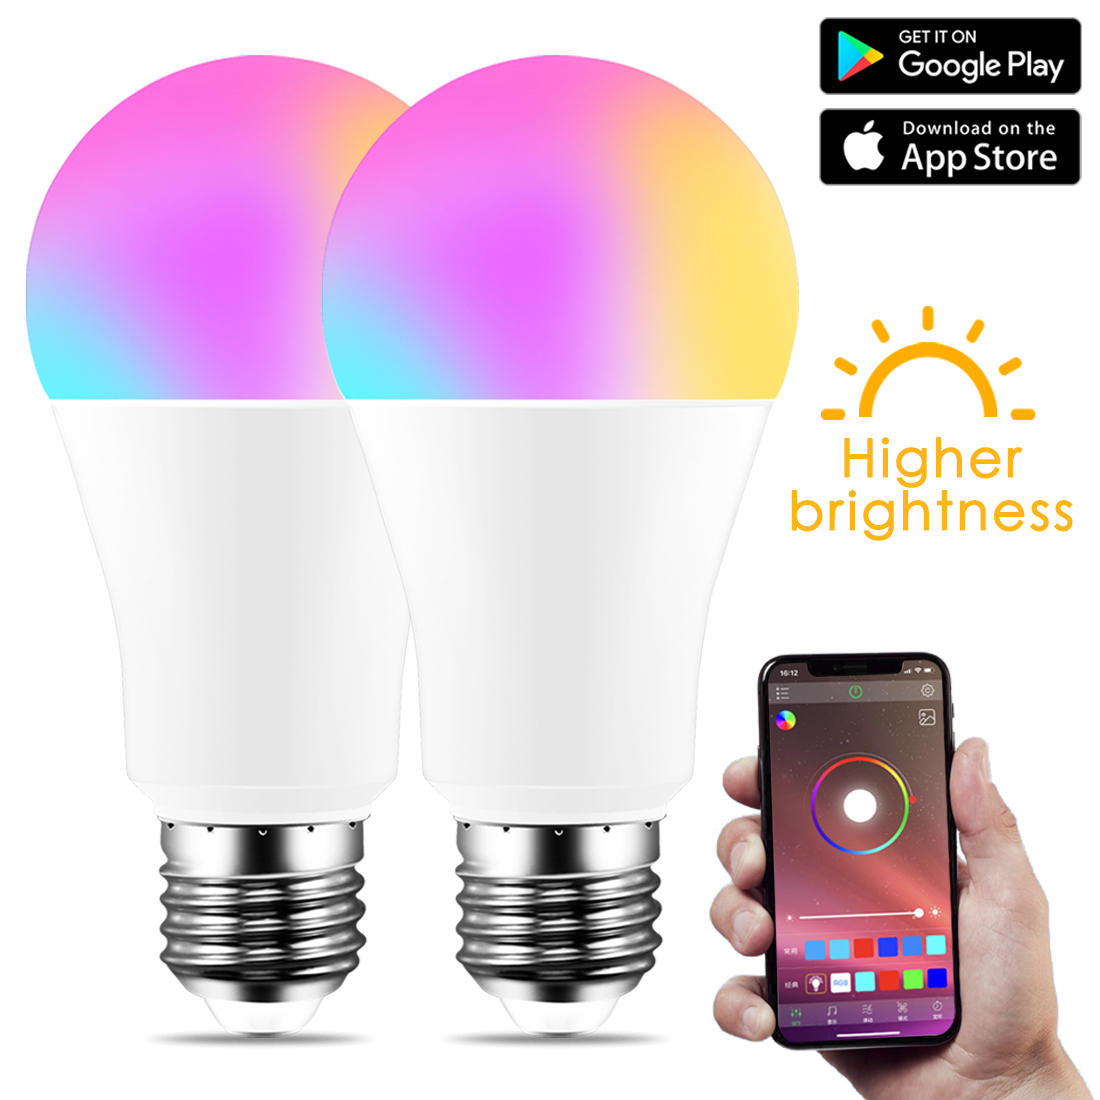 New Wireless Bluetooth 4.0 Smart Bulb home Lighting lamp 10W E27 Magic RGB +W LED Change Color Light Bulb Dimmable IOS /Android